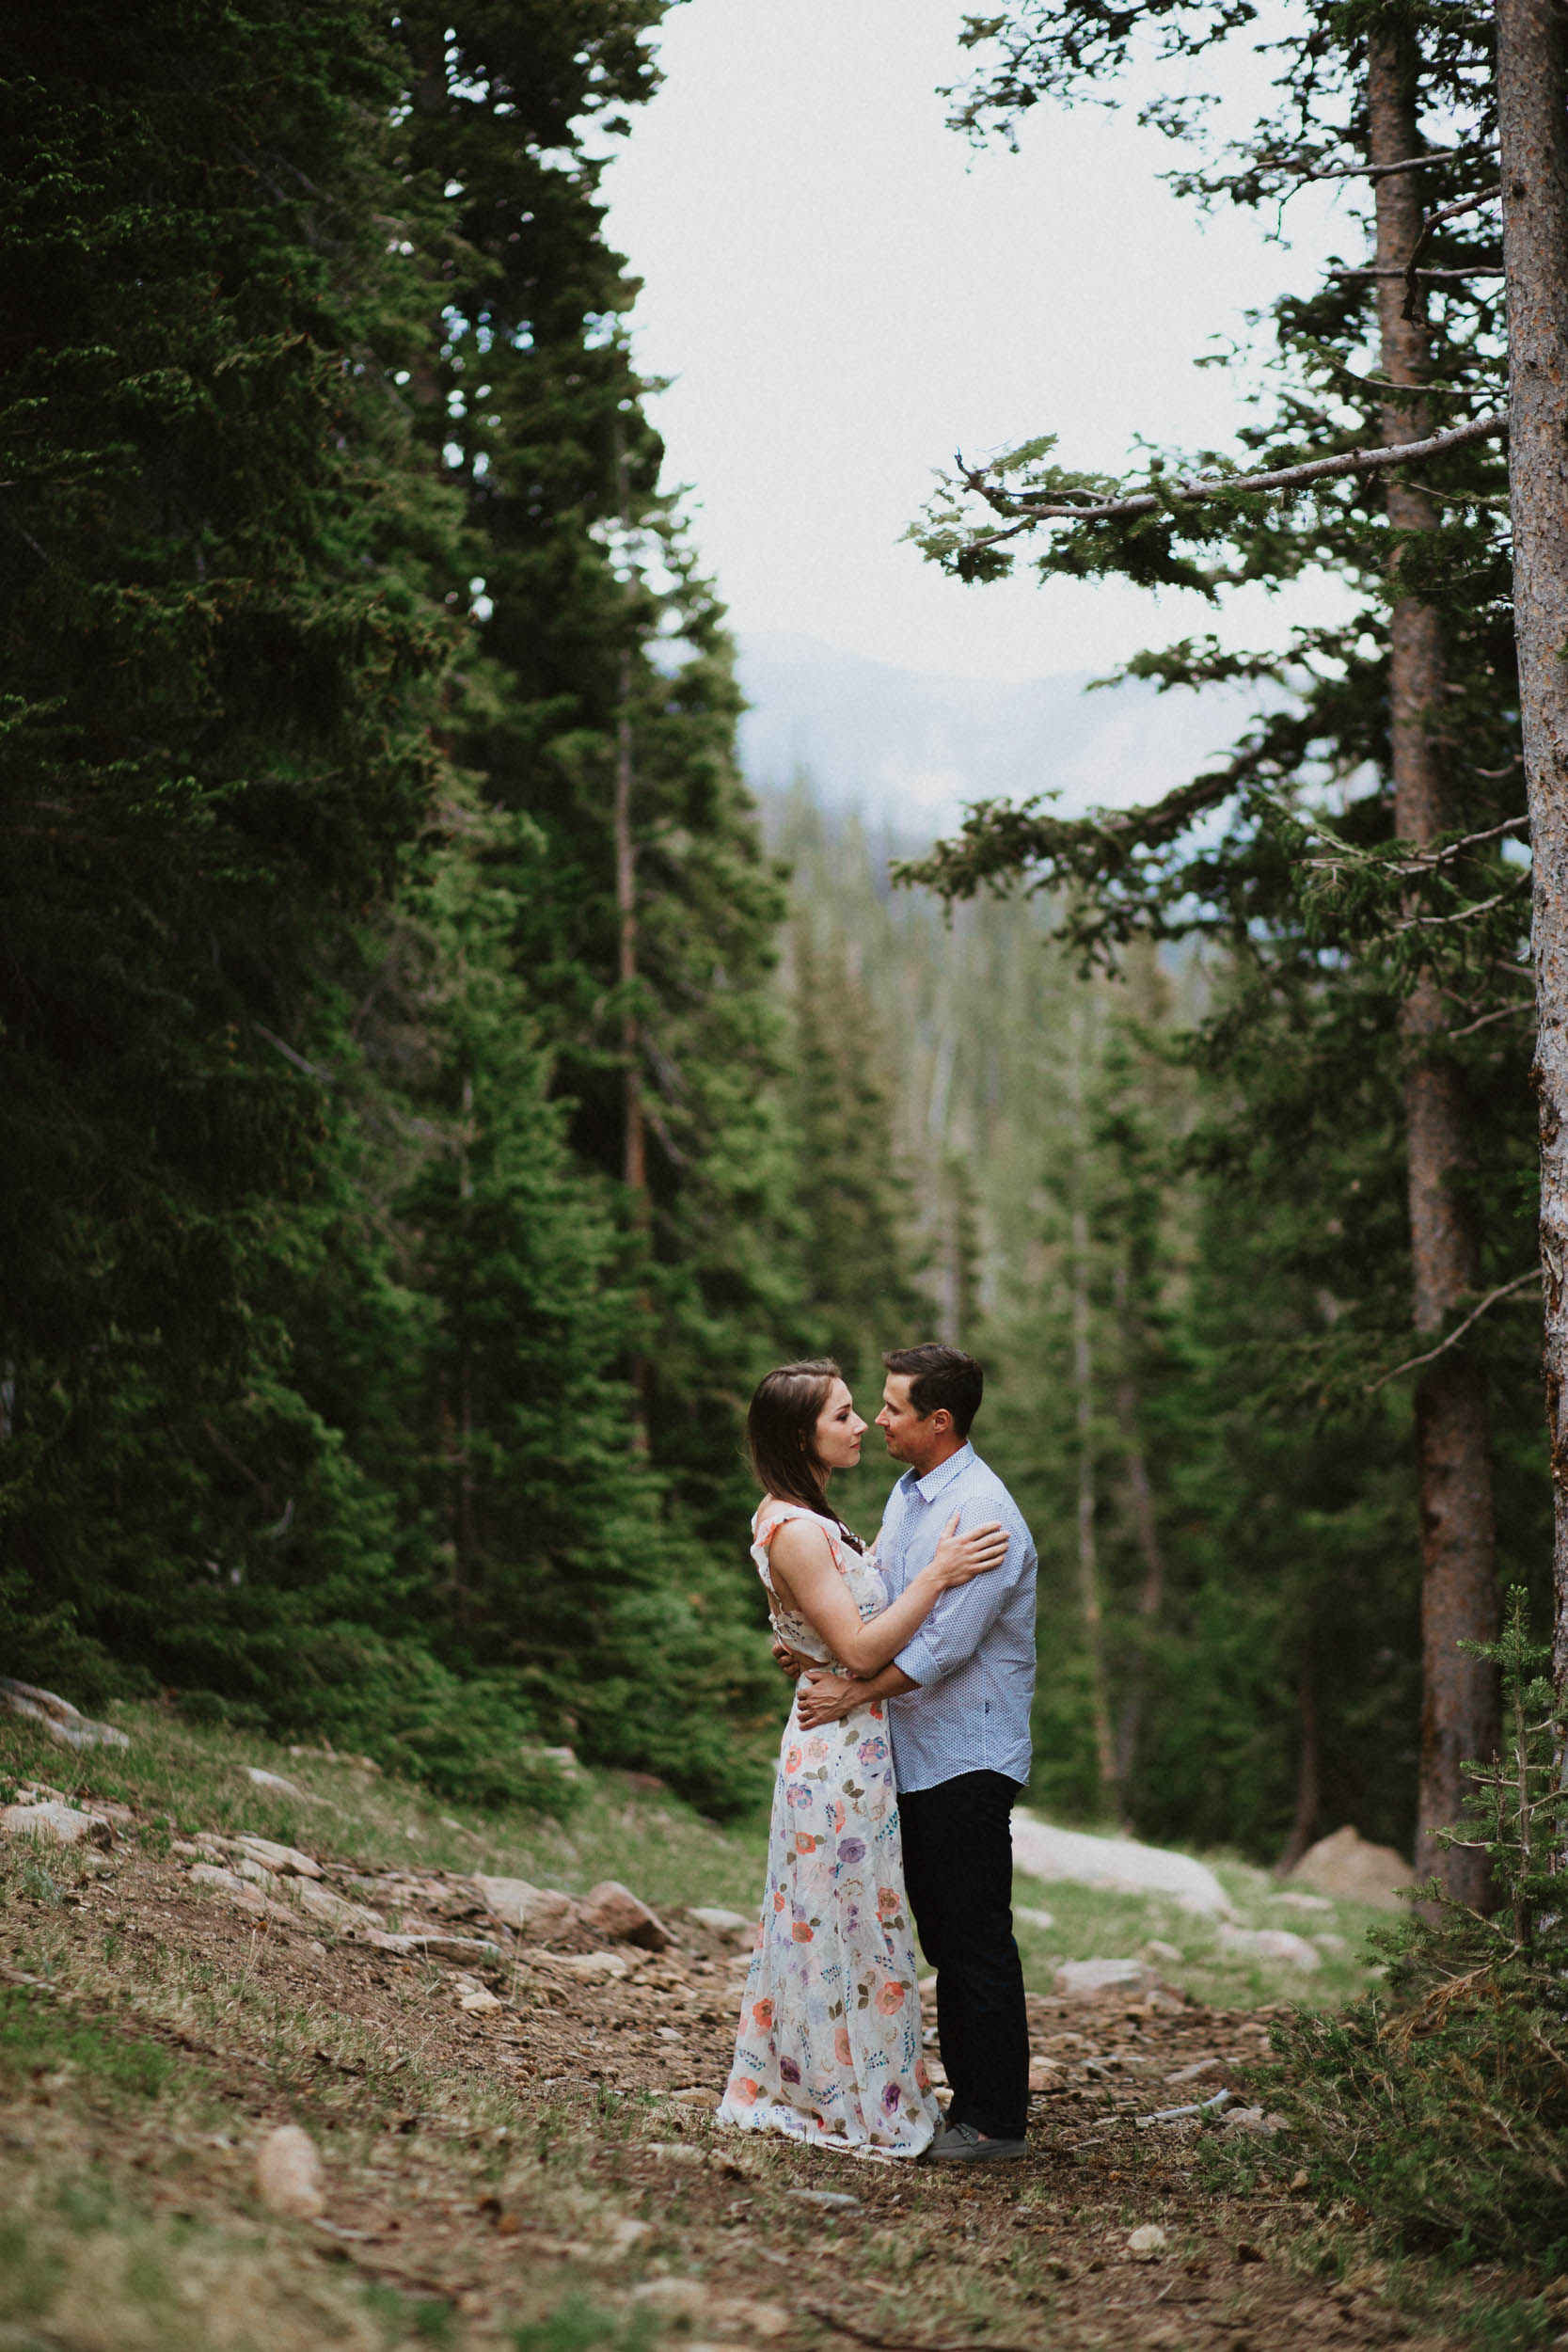 Rocky-Mountain-National-Park-Colorado-Engagement-025@2x.jpg